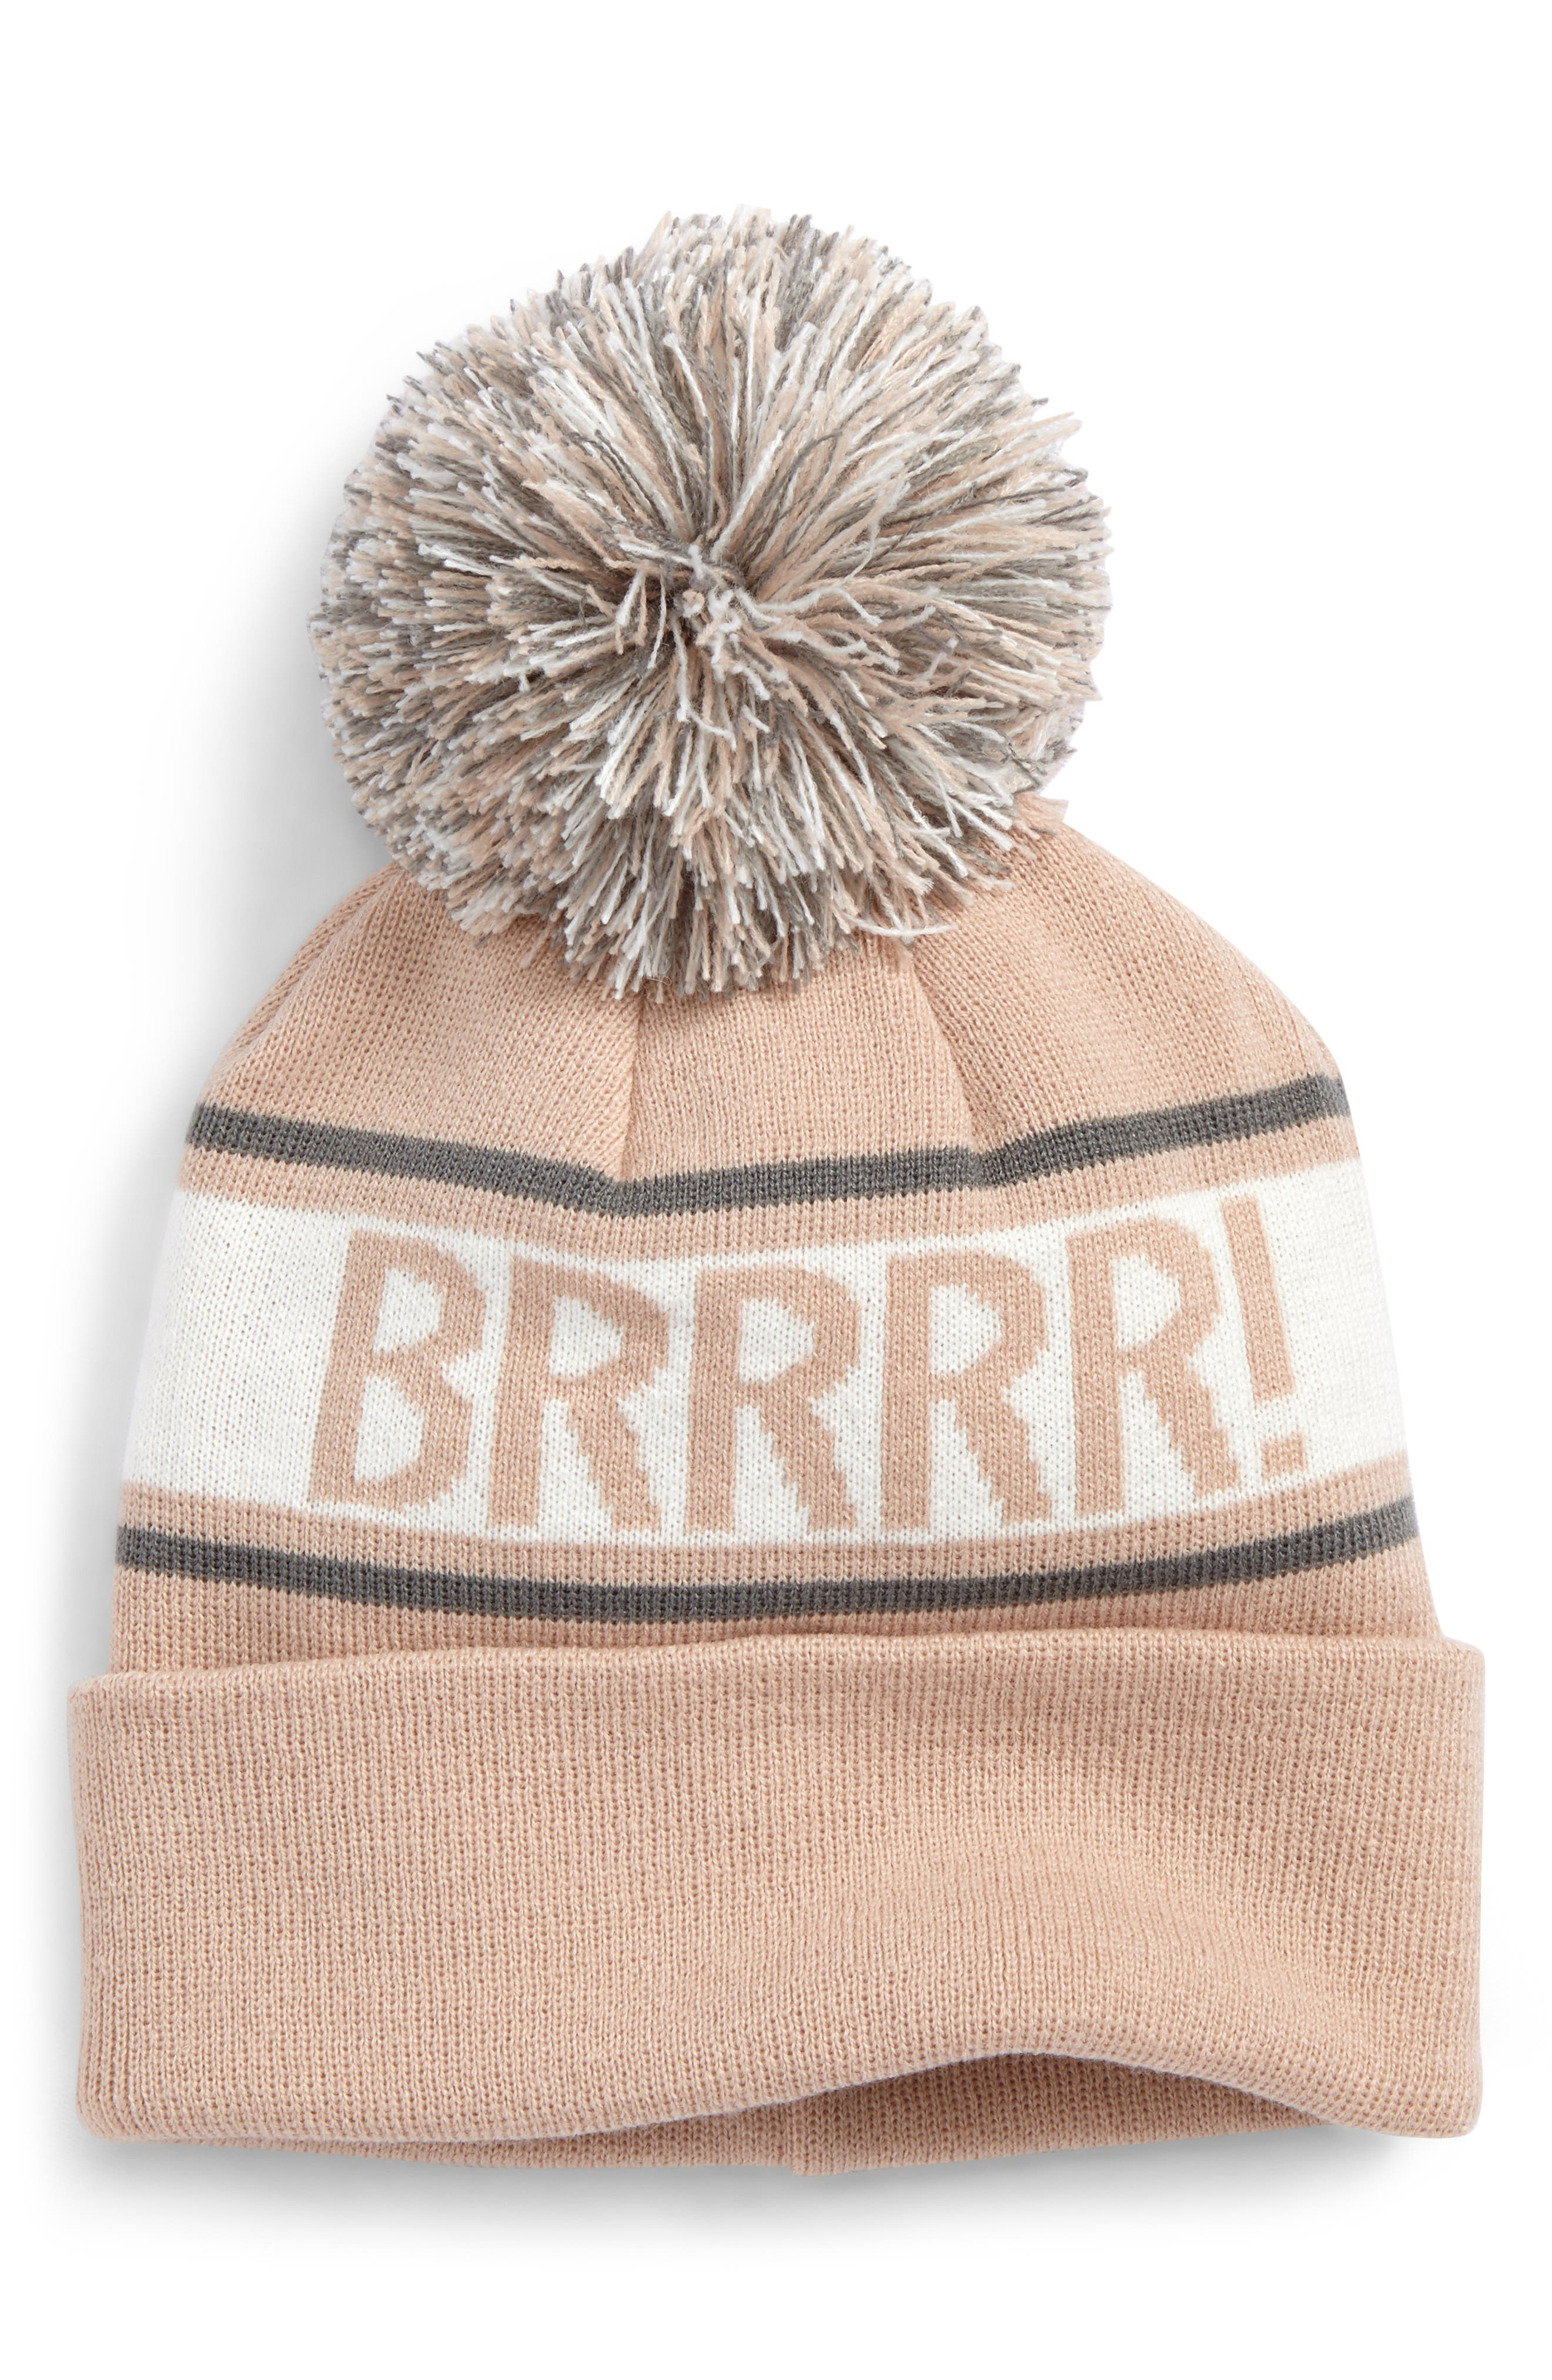 Main Image - BP. Verbiage Fair Isle Beanie